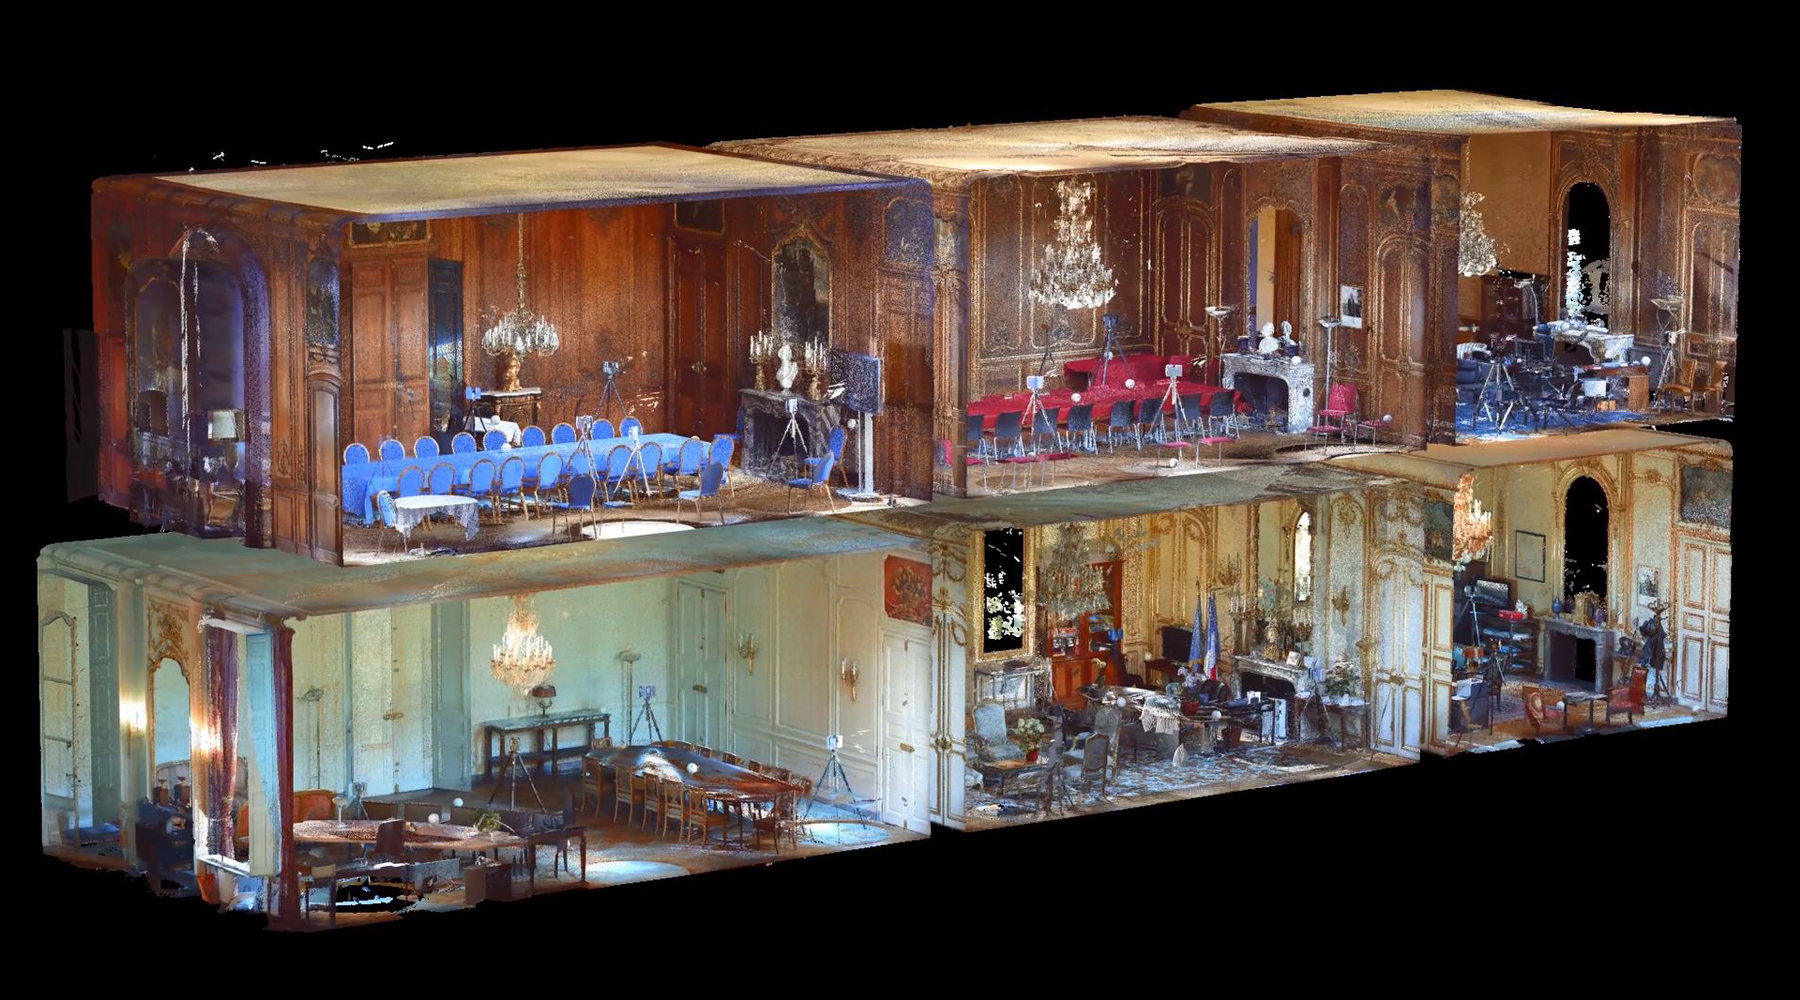 06 Mansion, Paris - Point cloud